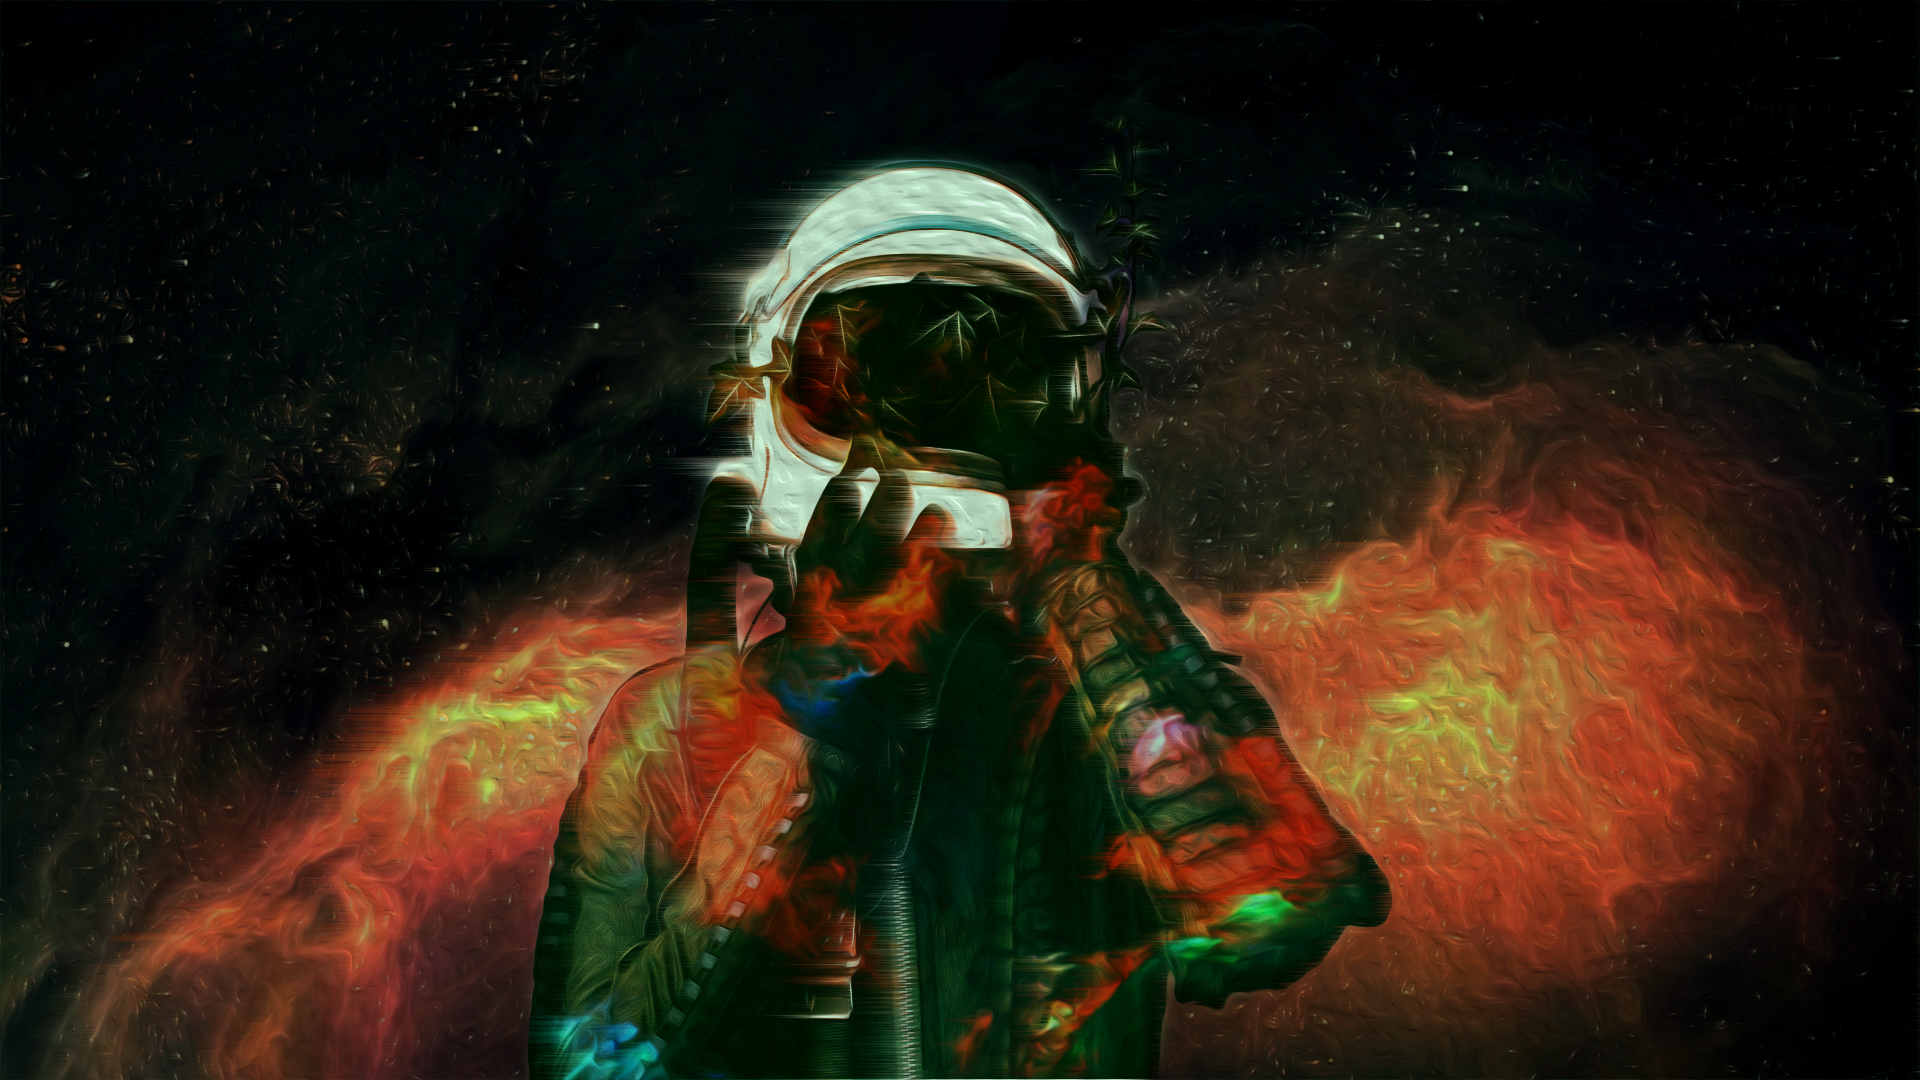 astronaut space abstract zm